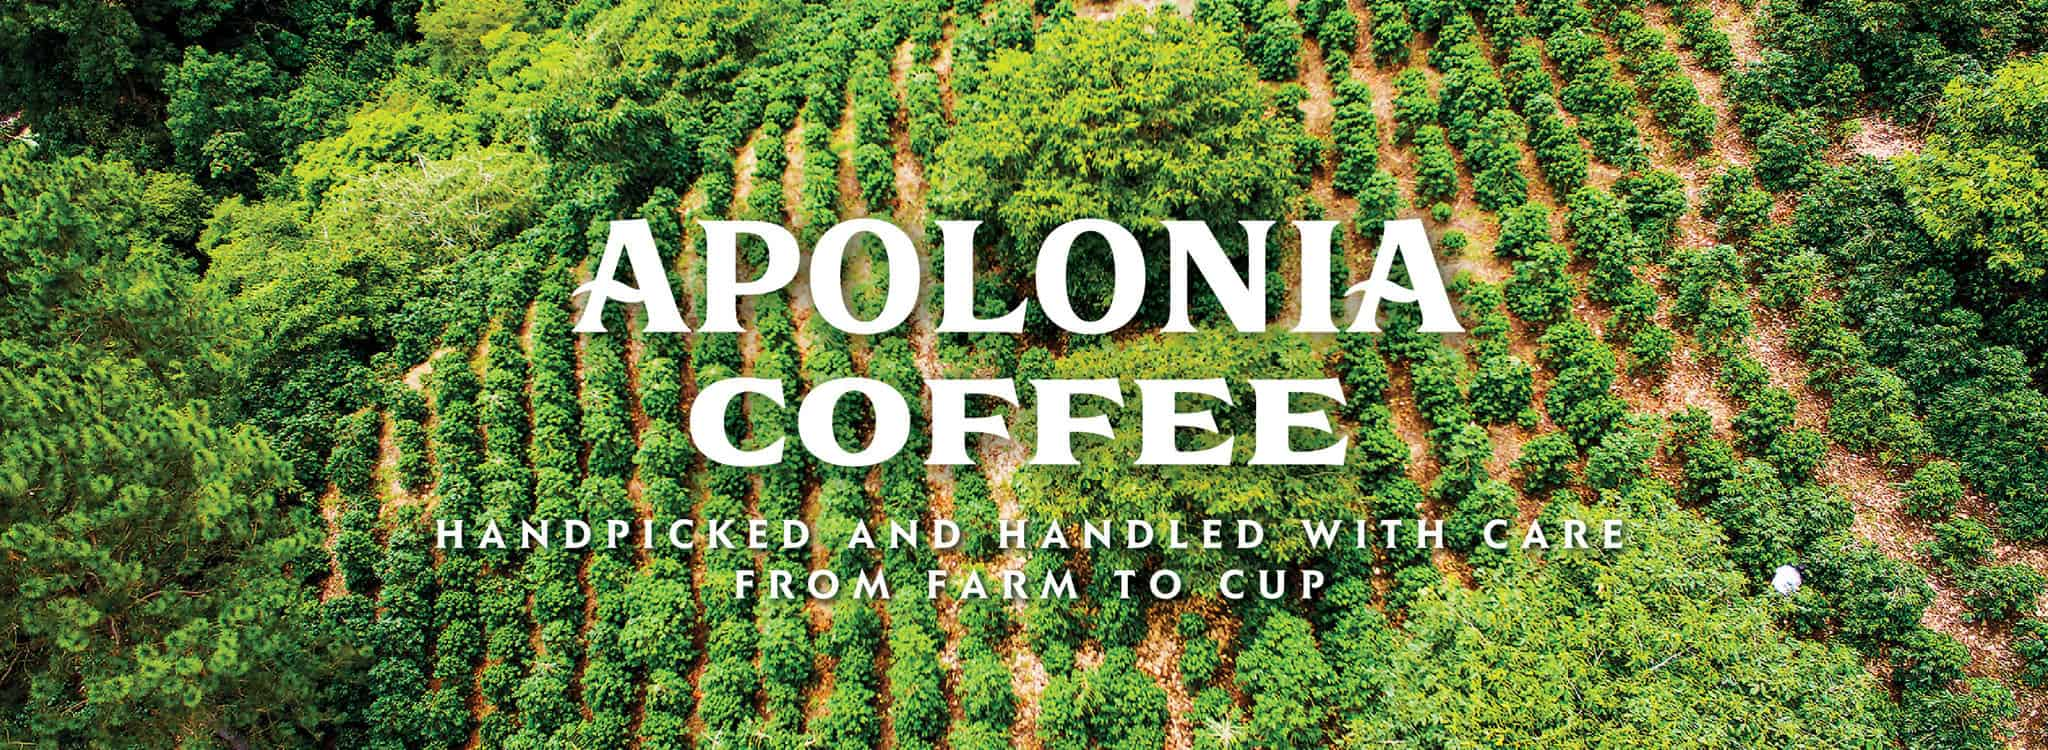 Masthead banner for Apolonia Coffee | Designed by Field of Study: A branding and graphic design consultancy | Houston TX | Jennifer Blanco & John Earles